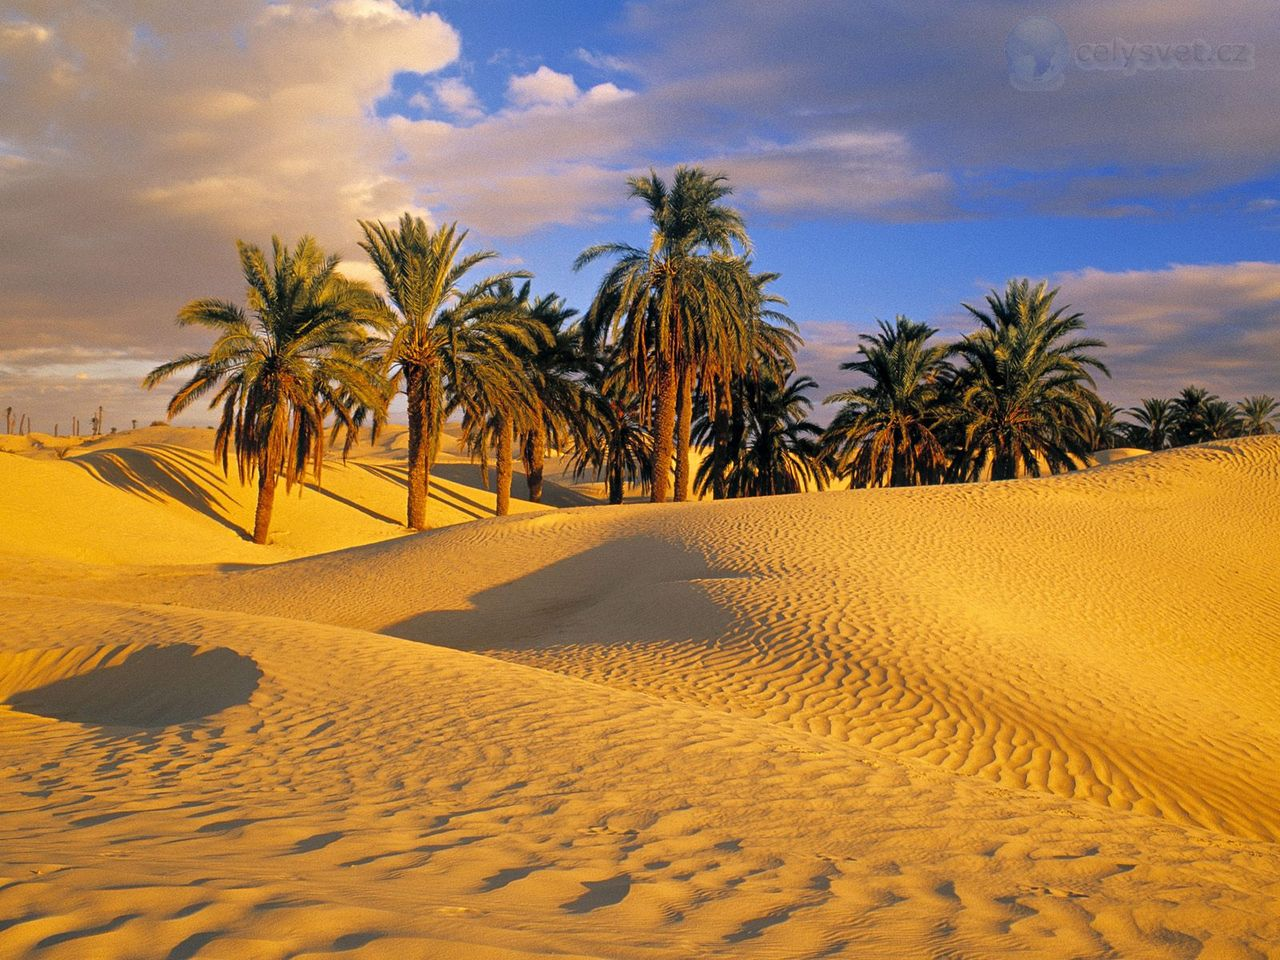 Desert Oasis Wallpaper - WallpaperSafari Oasis Landscape Wallpaper